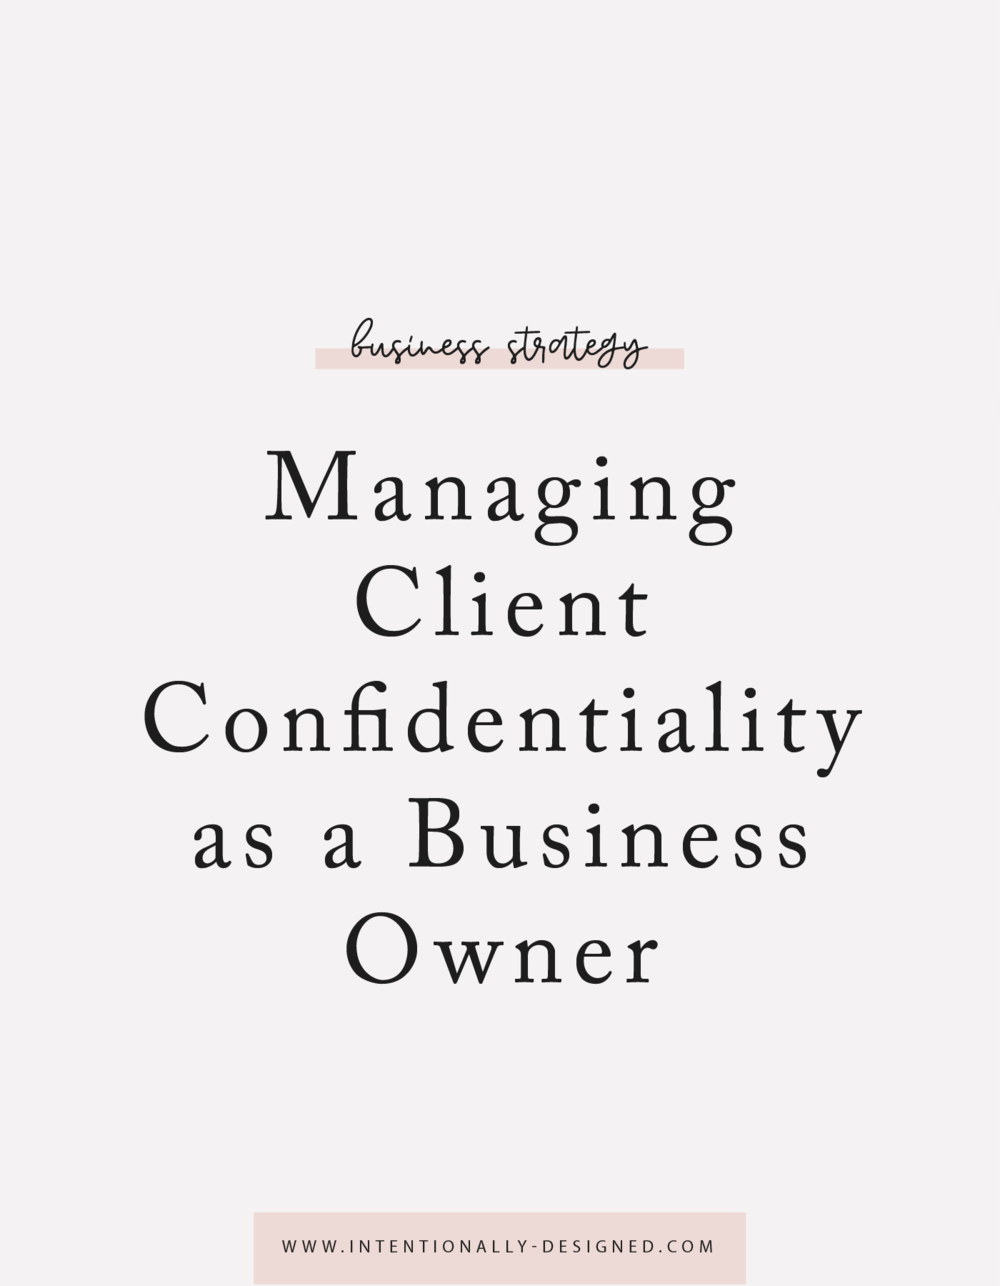 Managing Client Confidentiality as a Business Owner